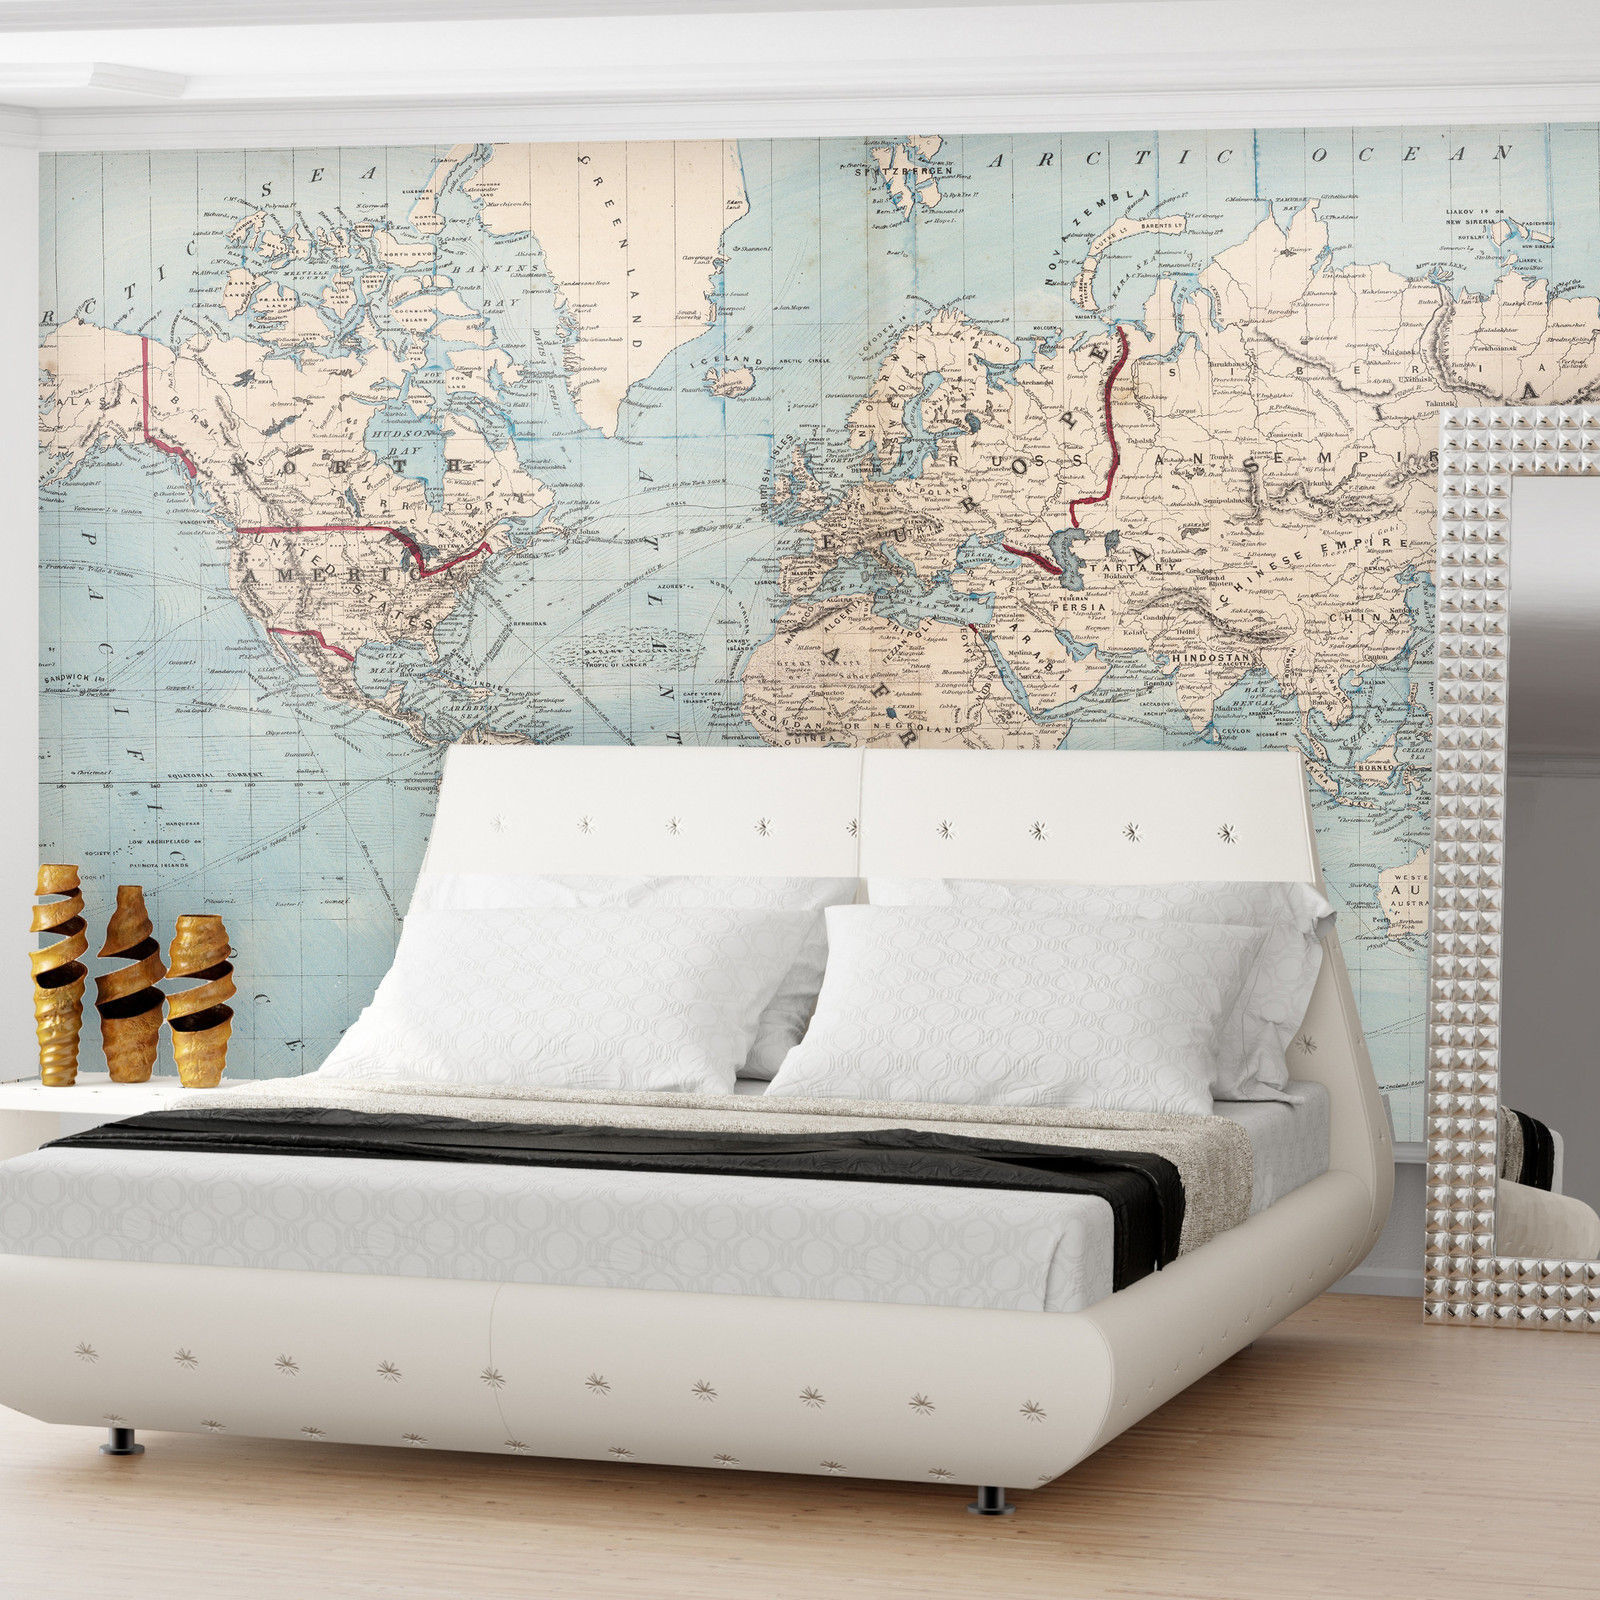 Best removable wallpaper ebay they offer many different designs including full wall maps of the world and more gumiabroncs Image collections